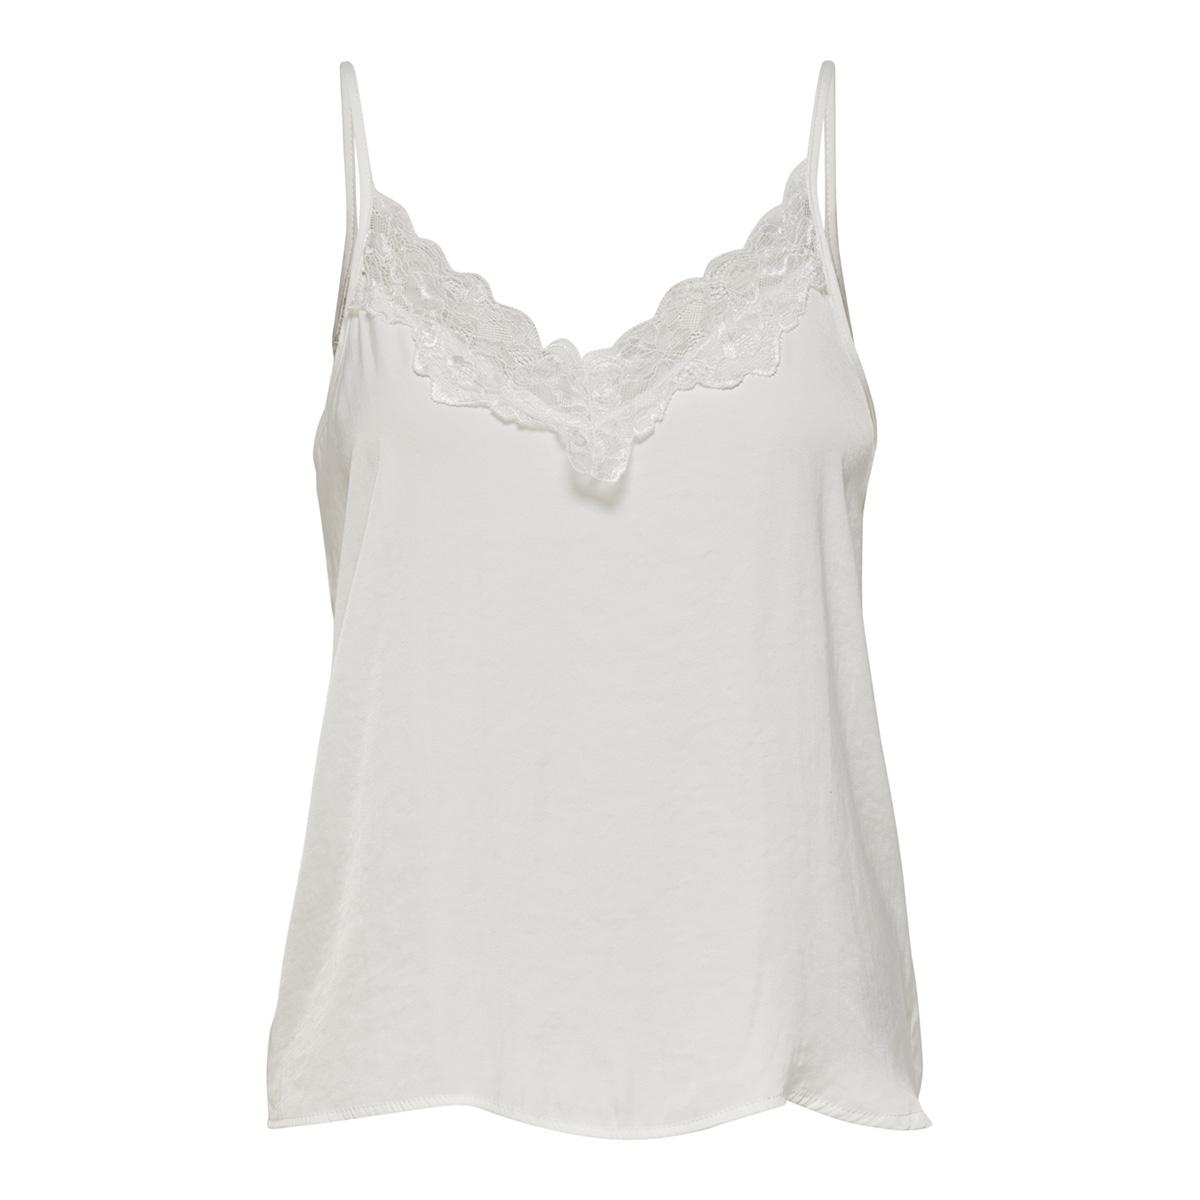 jdyappa lace singlet wvn noos 15148129 jacqueline de yong top cloud dancer/dtm lace